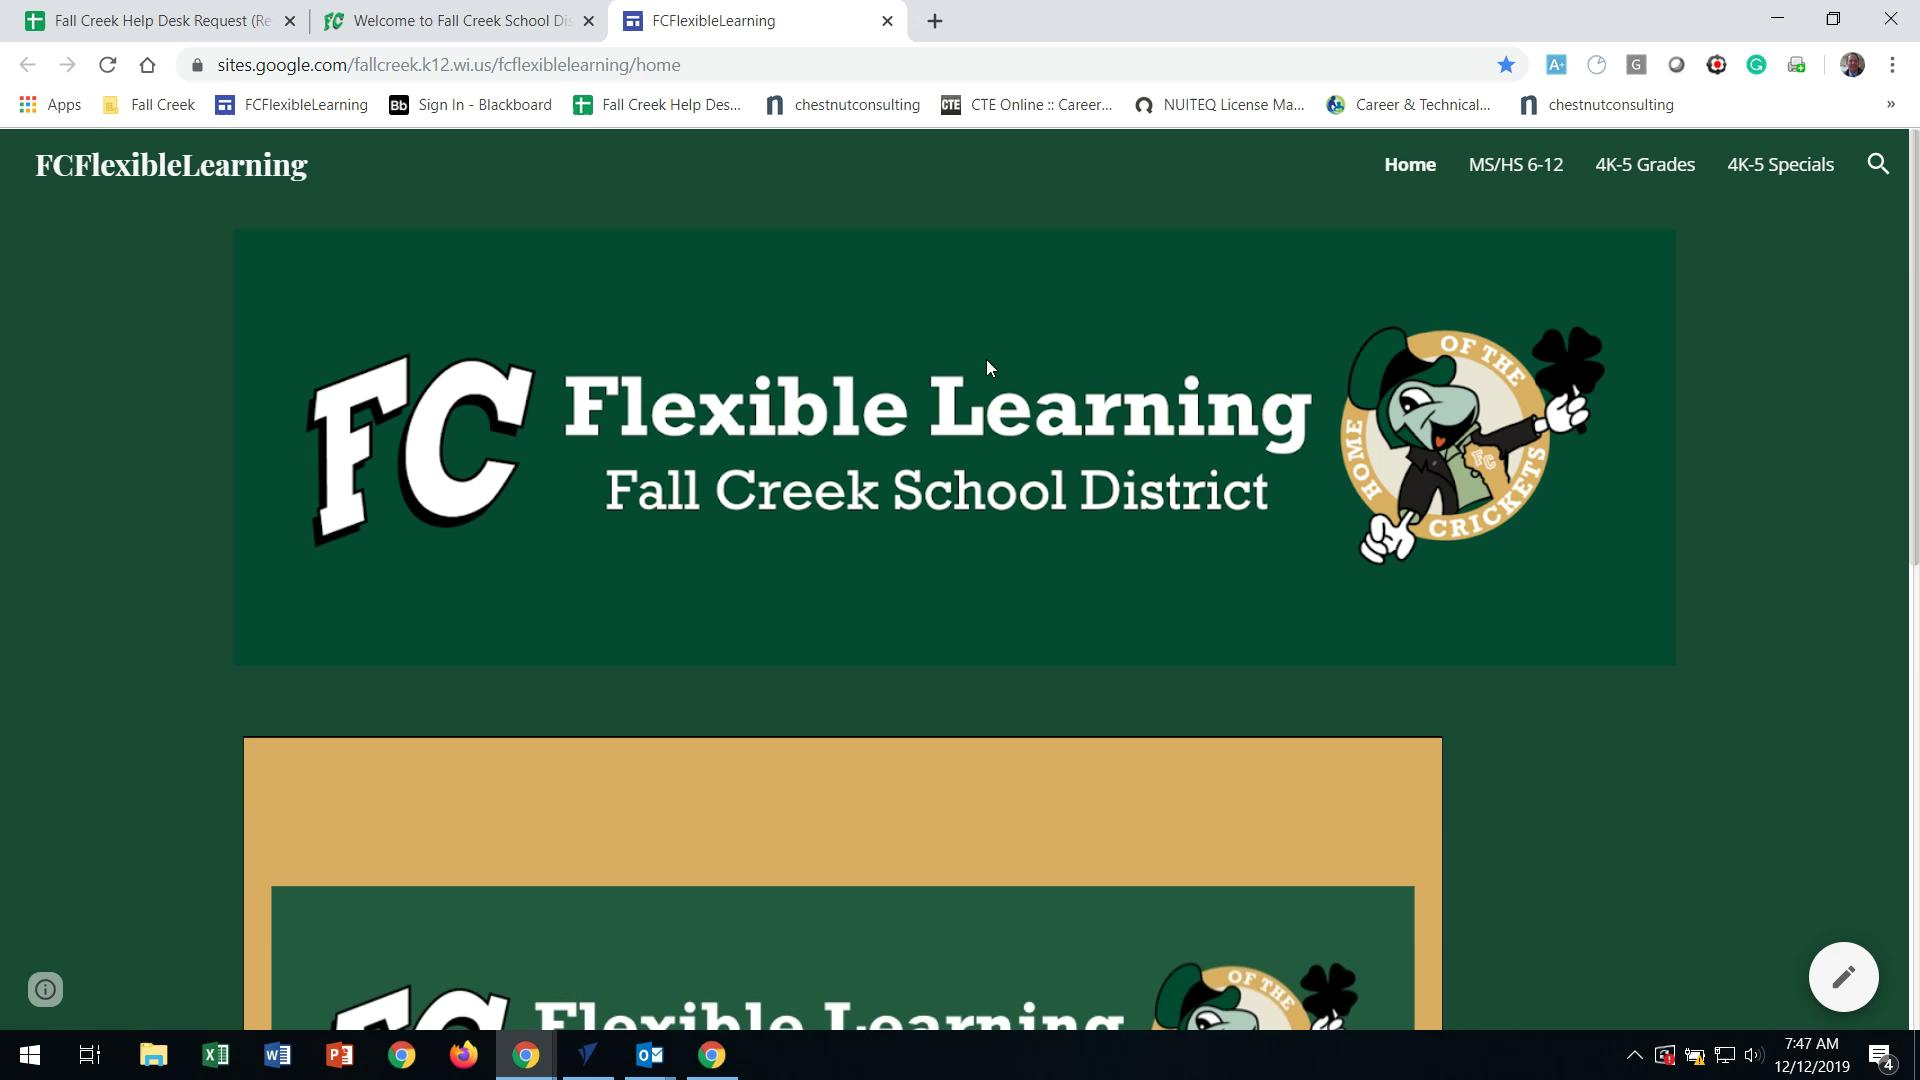 Flexible Learning Site